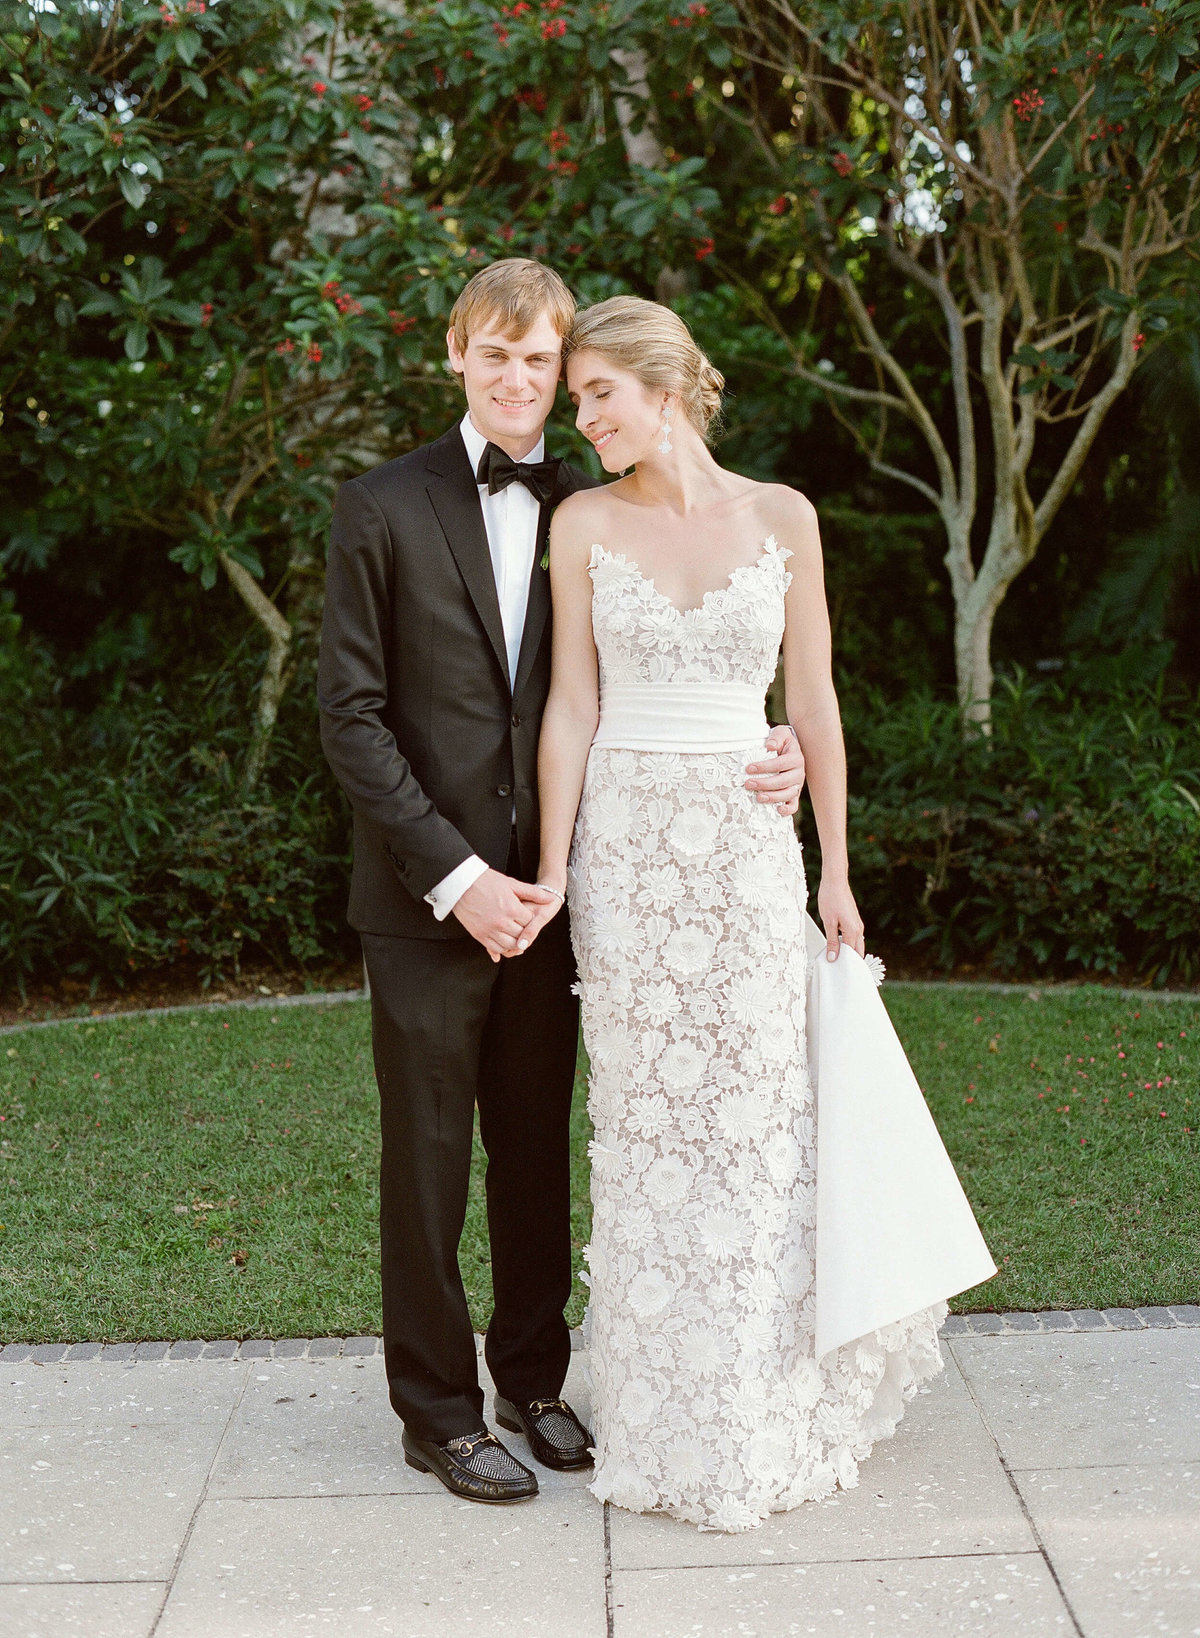 32-KTMerry-weddings-chelsea-conor-mara-Palm-Beach